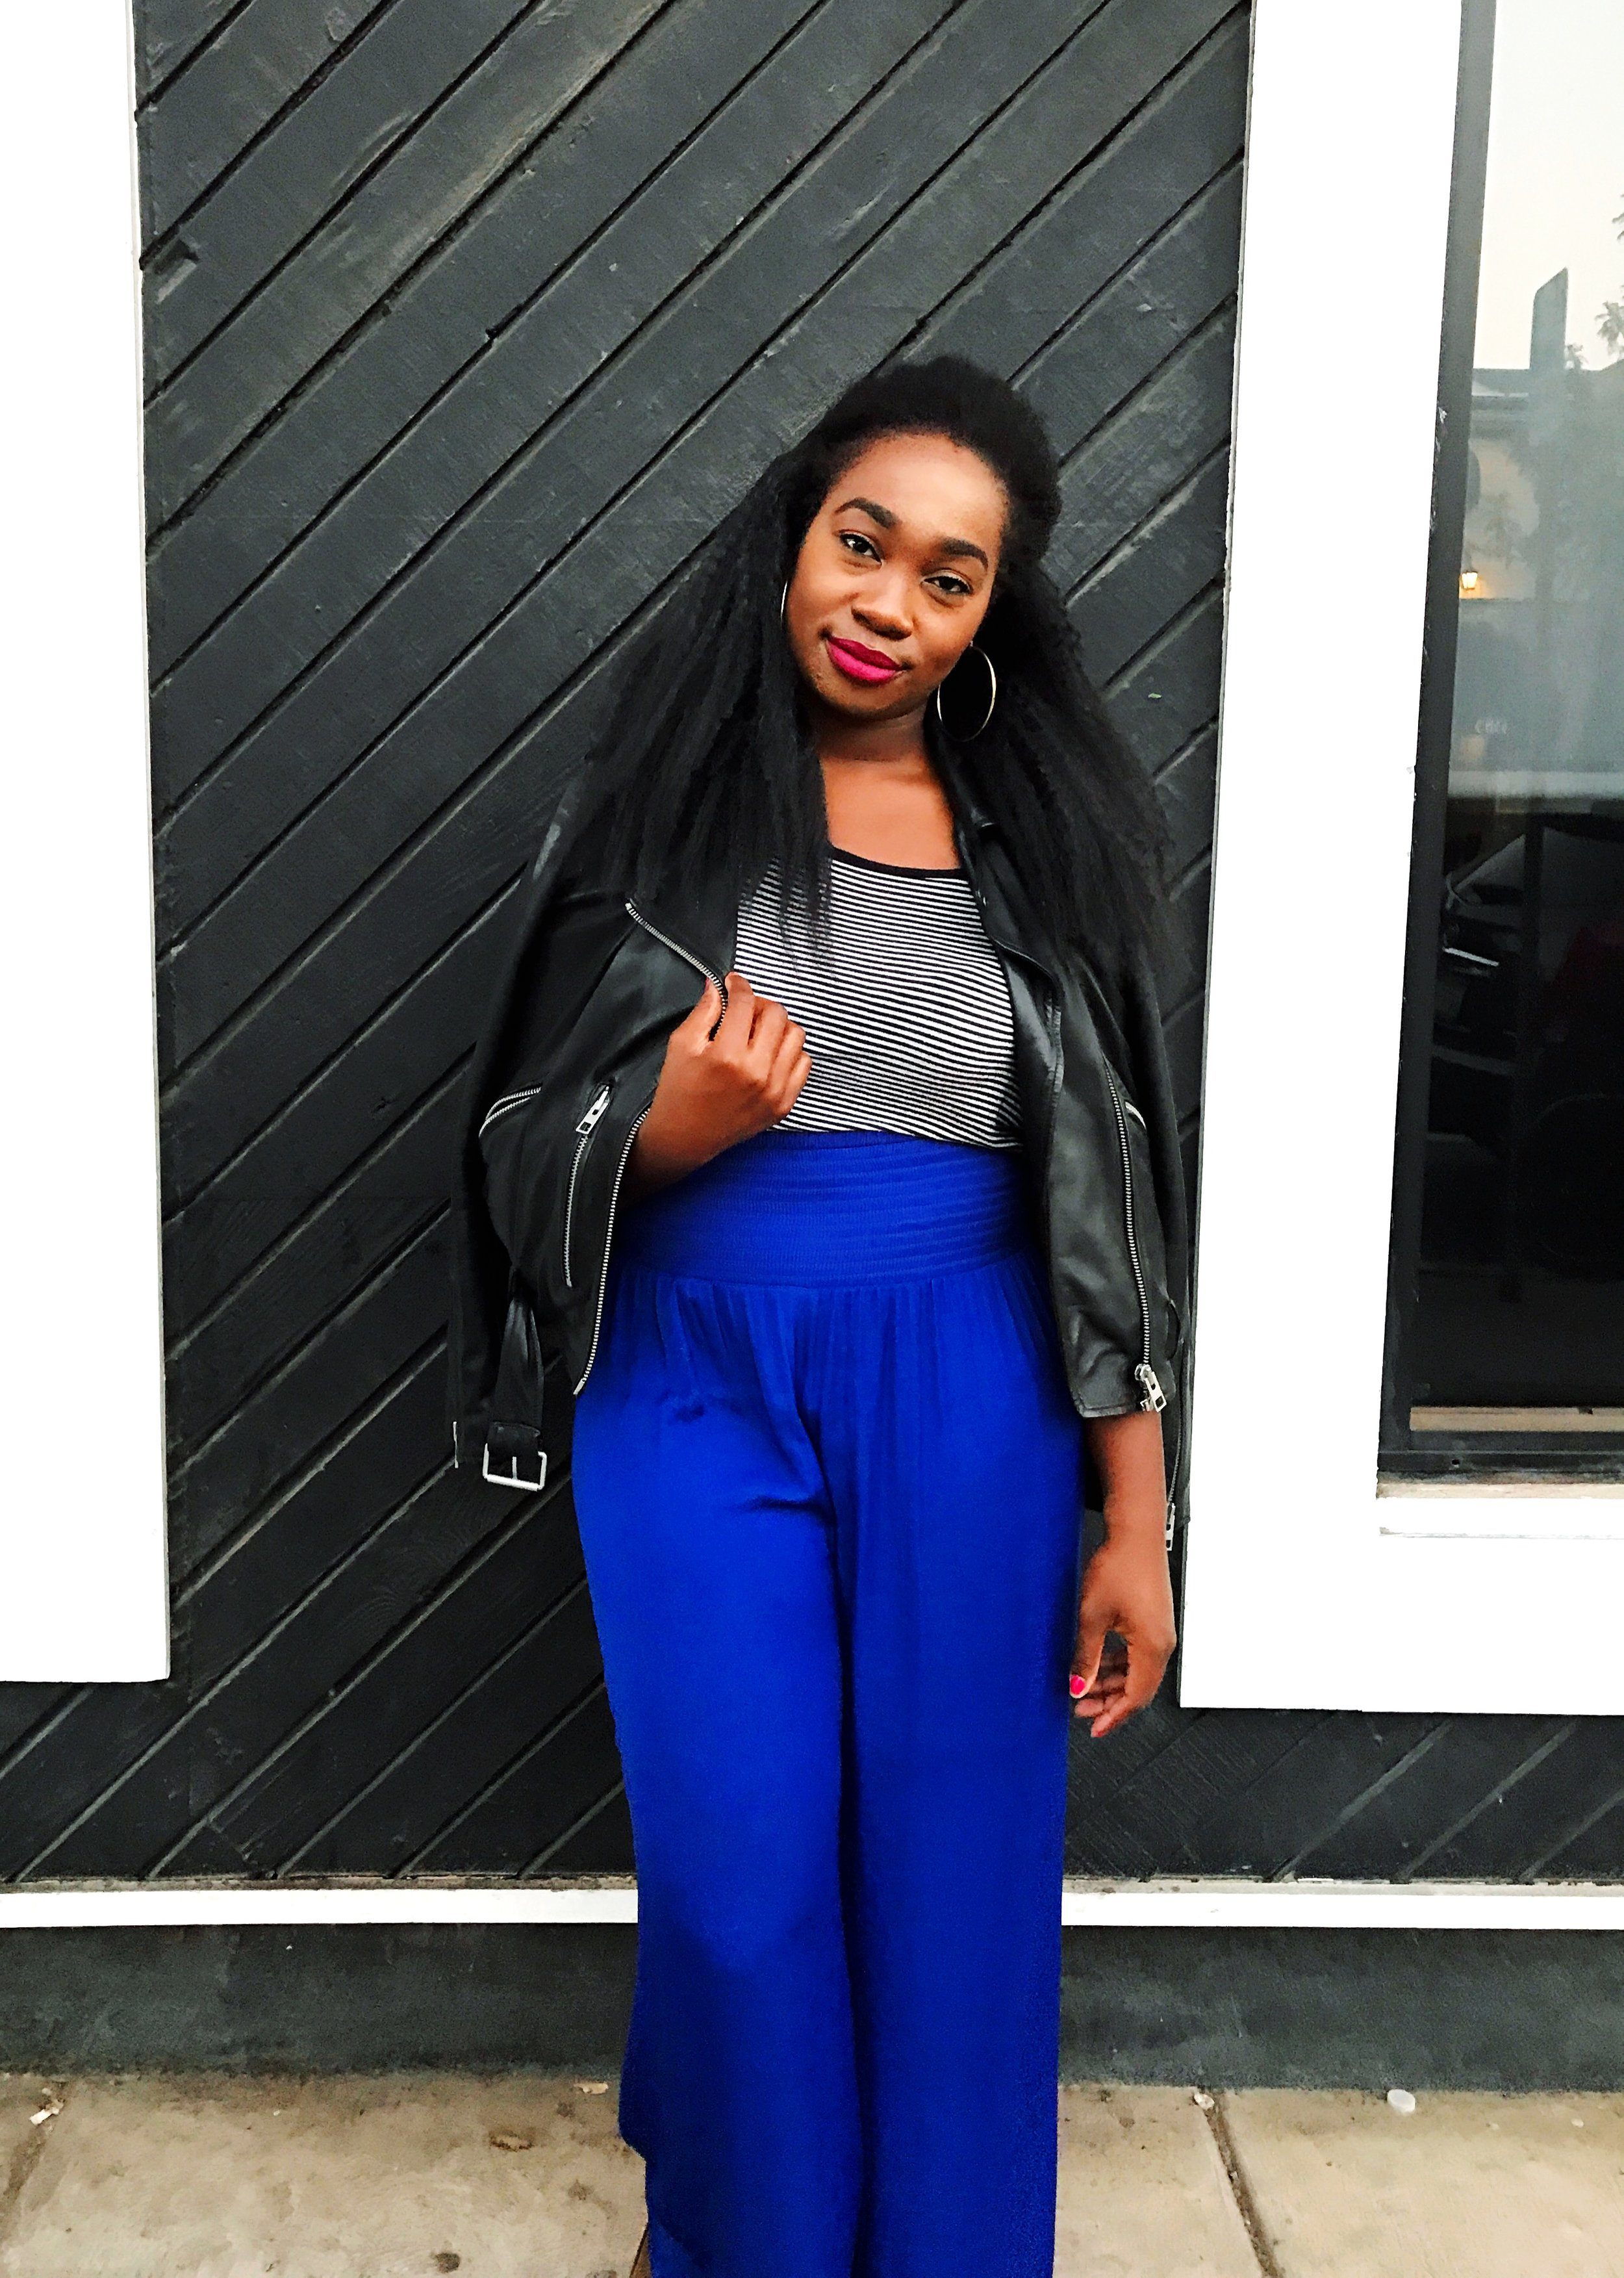 Femi wearing All Saints leather jacket and blue wide-leg pants